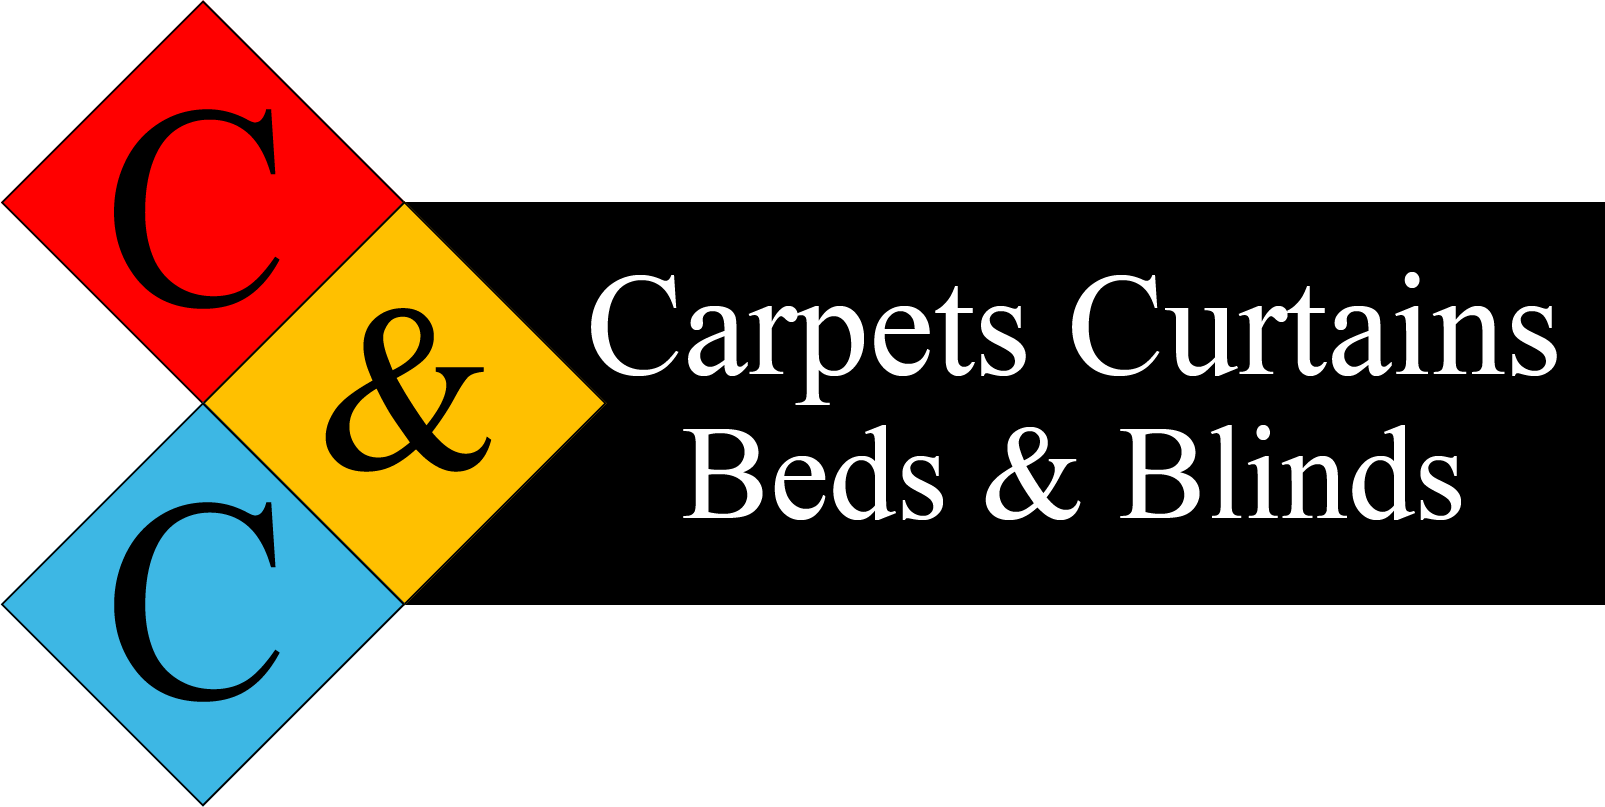 C & C Carpets (UK) Ltd Logo